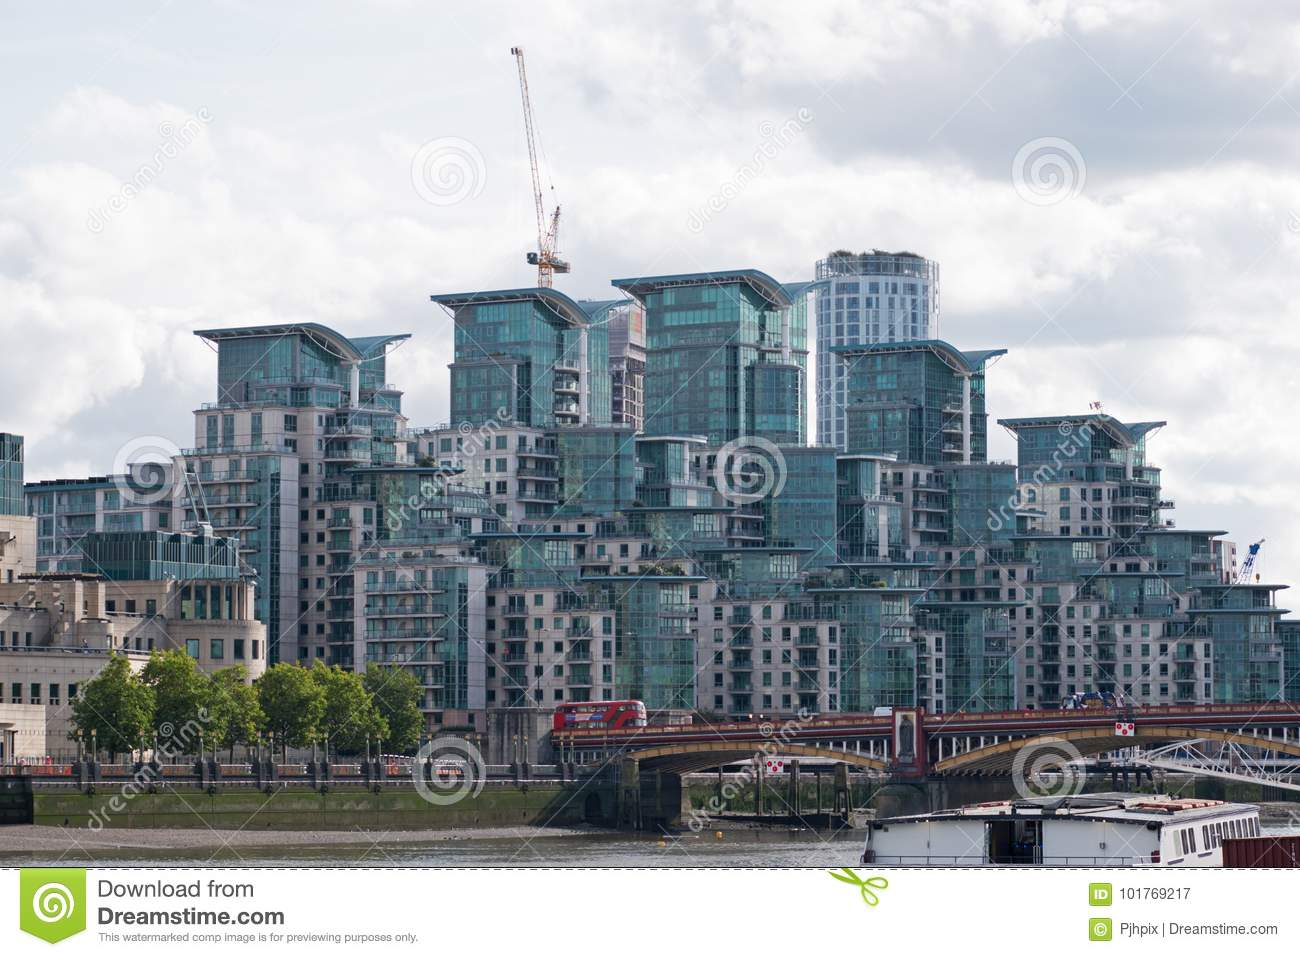 Modern housing blocks on the banks of the river thames in central london at vauxhall